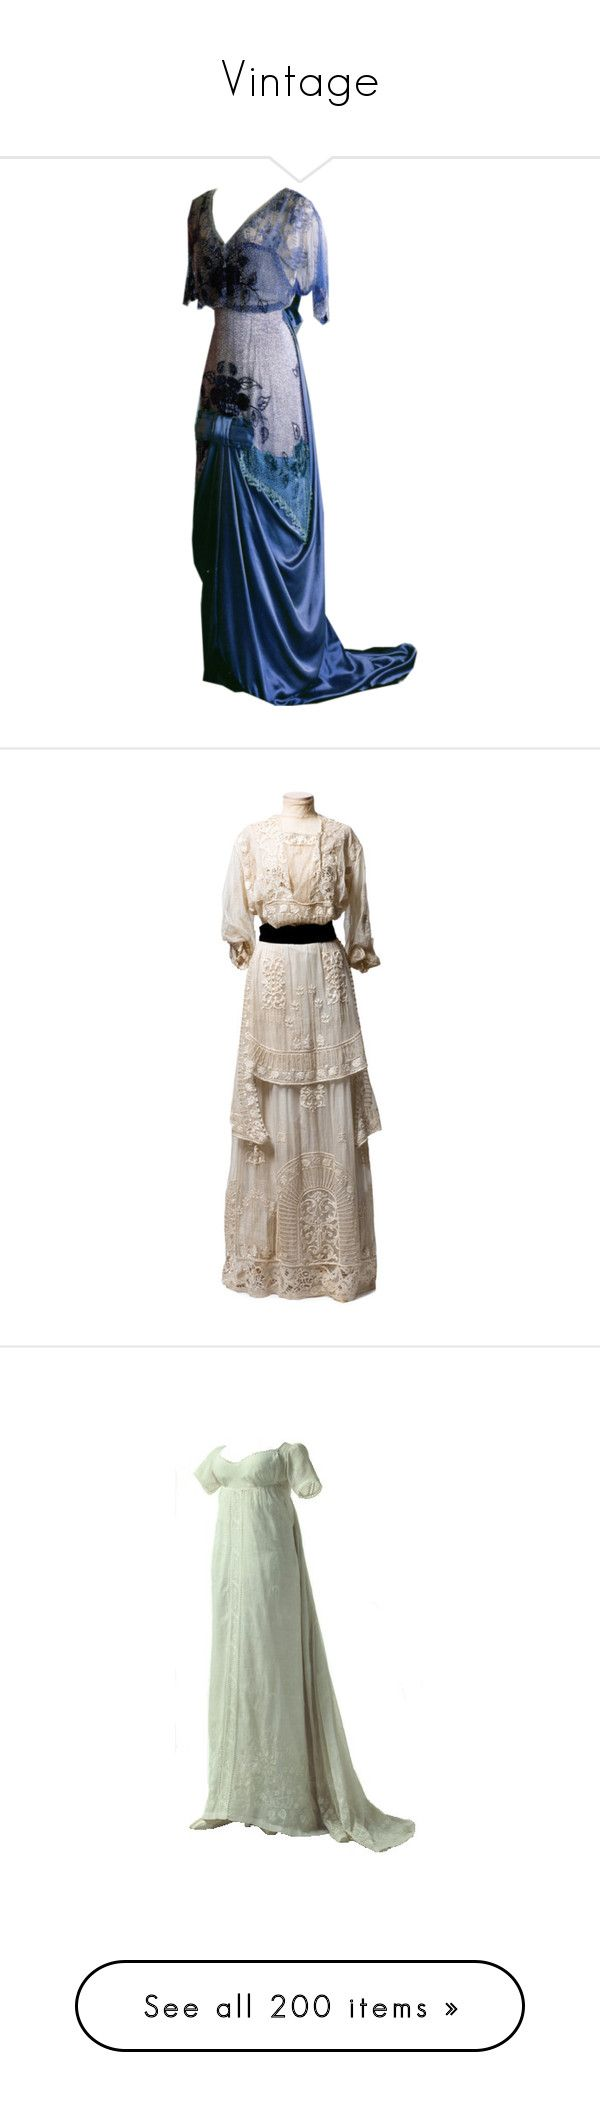 """""""Vintage"""" by floriane97 ❤ liked on Polyvore featuring dresses, gowns, titanic, costume, vestidos antiguos, vintage, edwardian, brown evening gowns, edwardian dress and vintage ball gowns"""